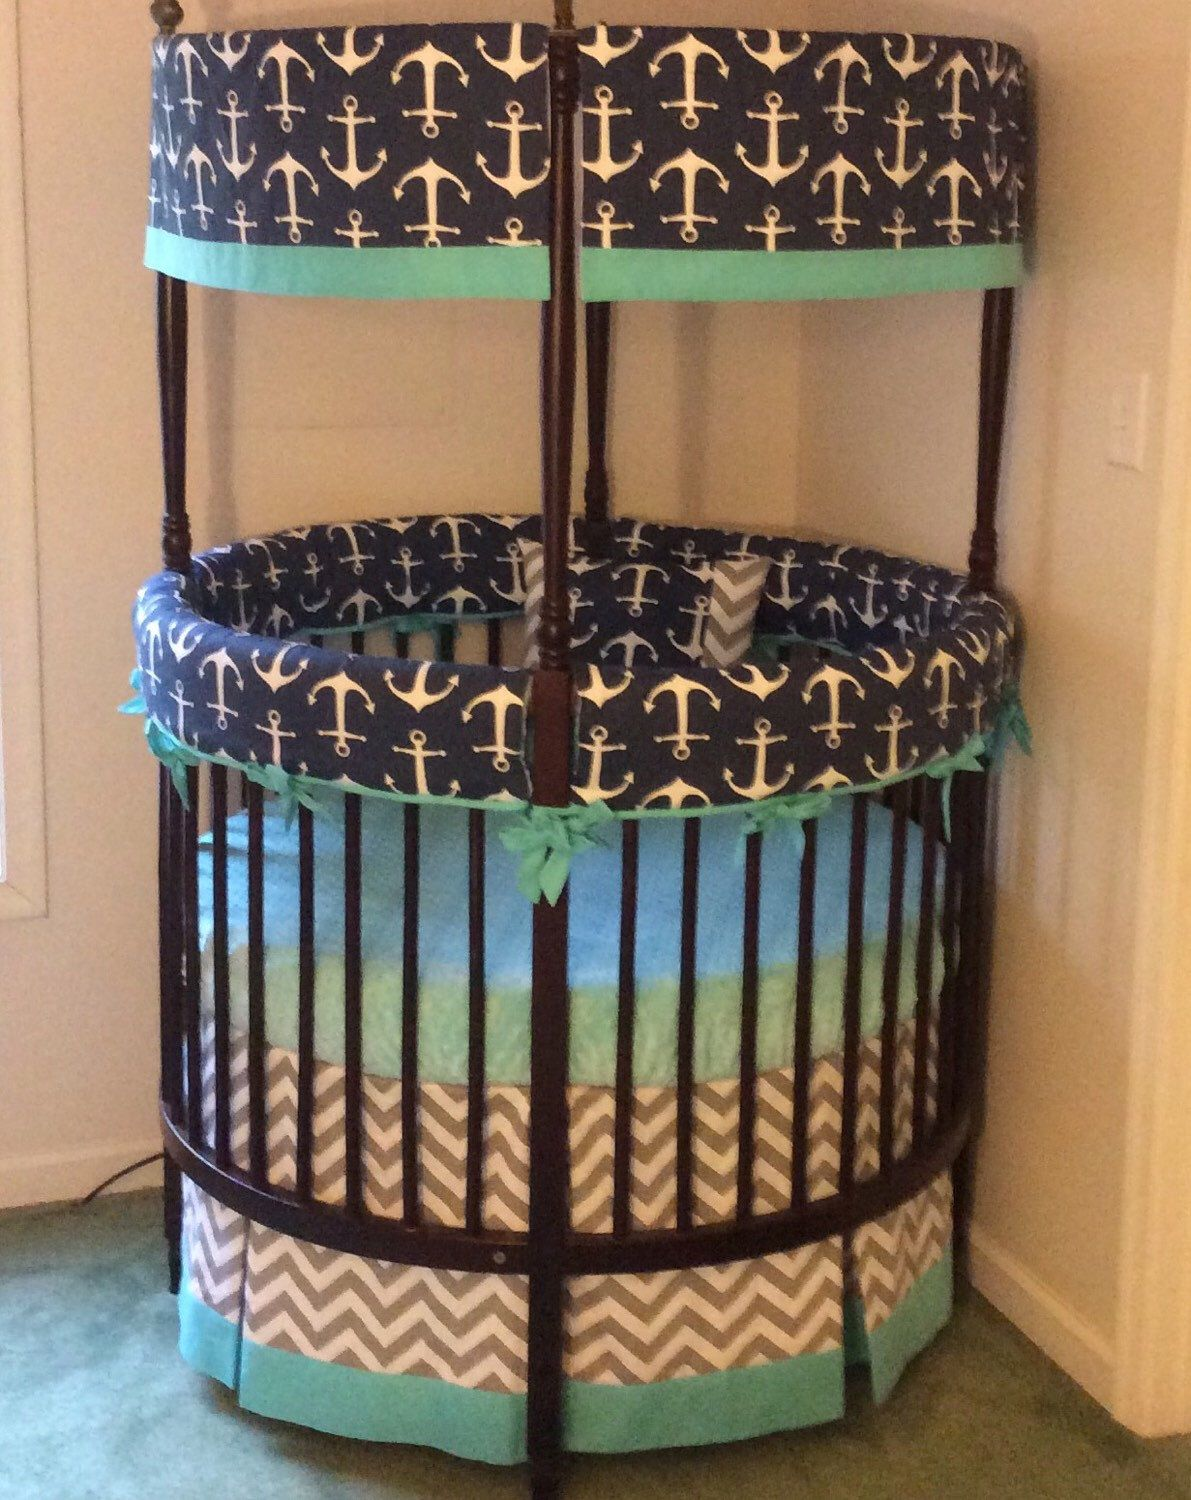 Design Round Cribs a personal favorite from my etsy shop httpswww comlisting anchor round crib bedding made to order deposit